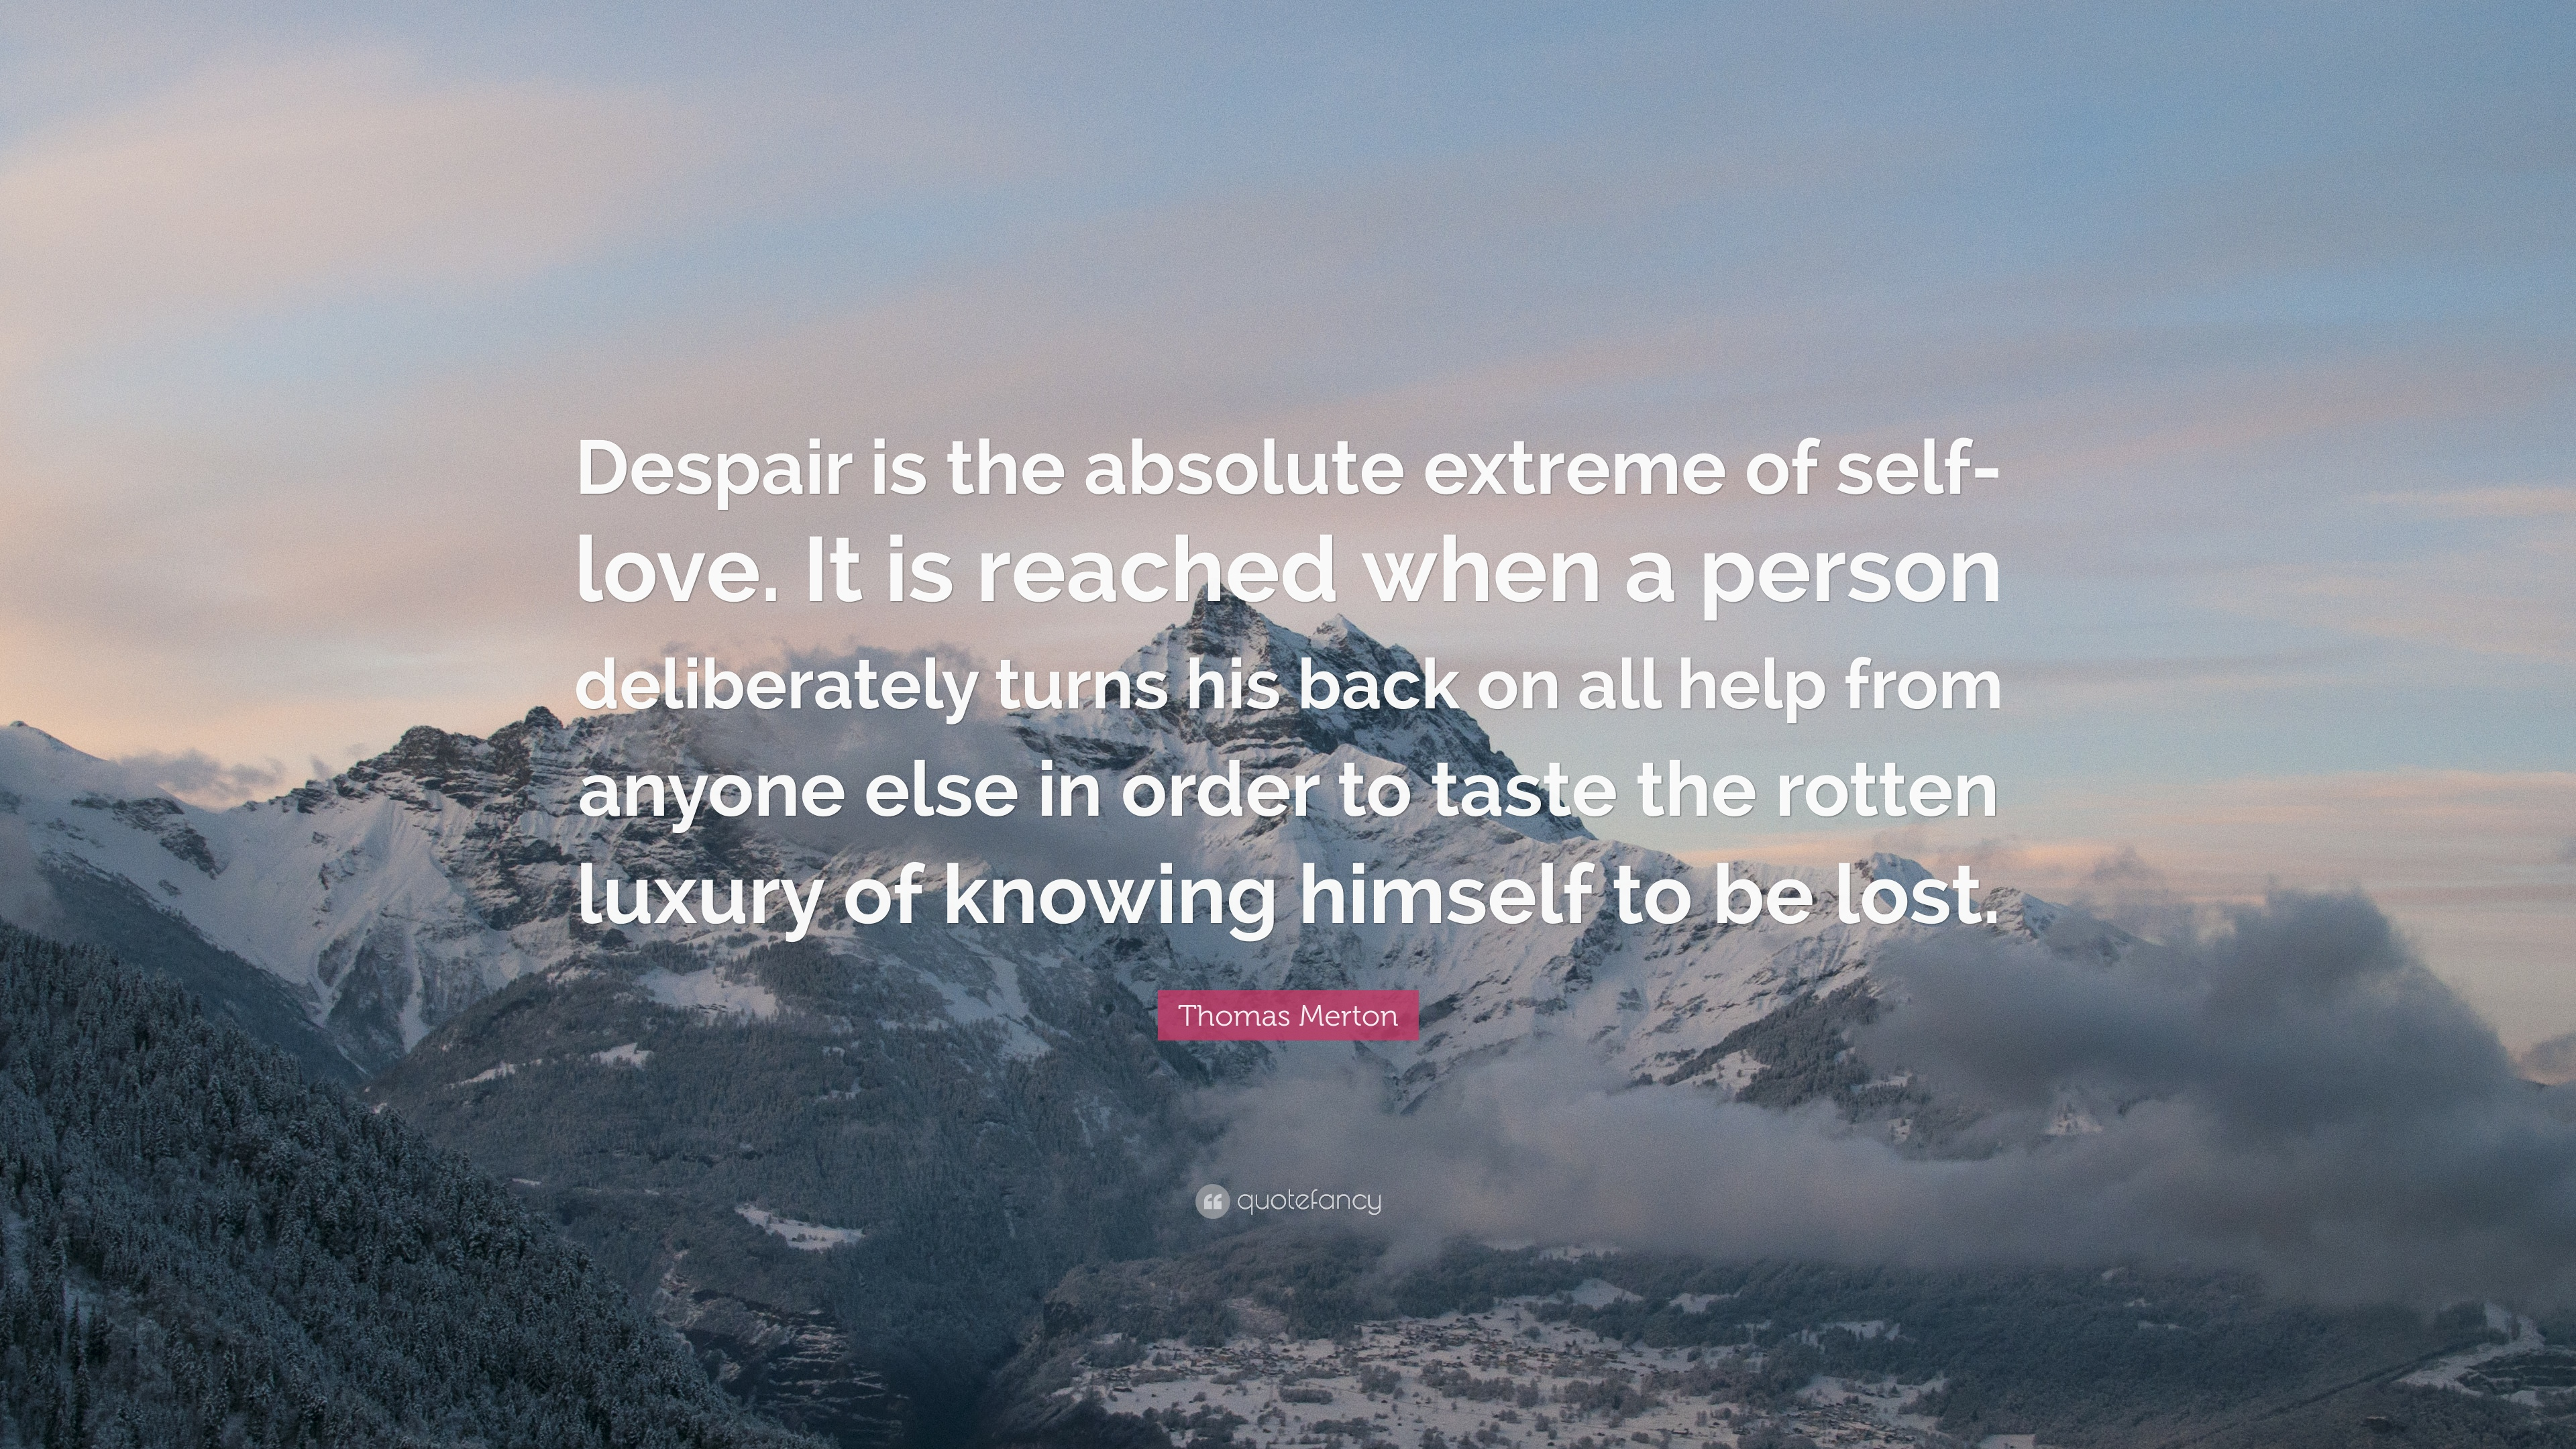 thomas merton quote despair is the absolute extreme of